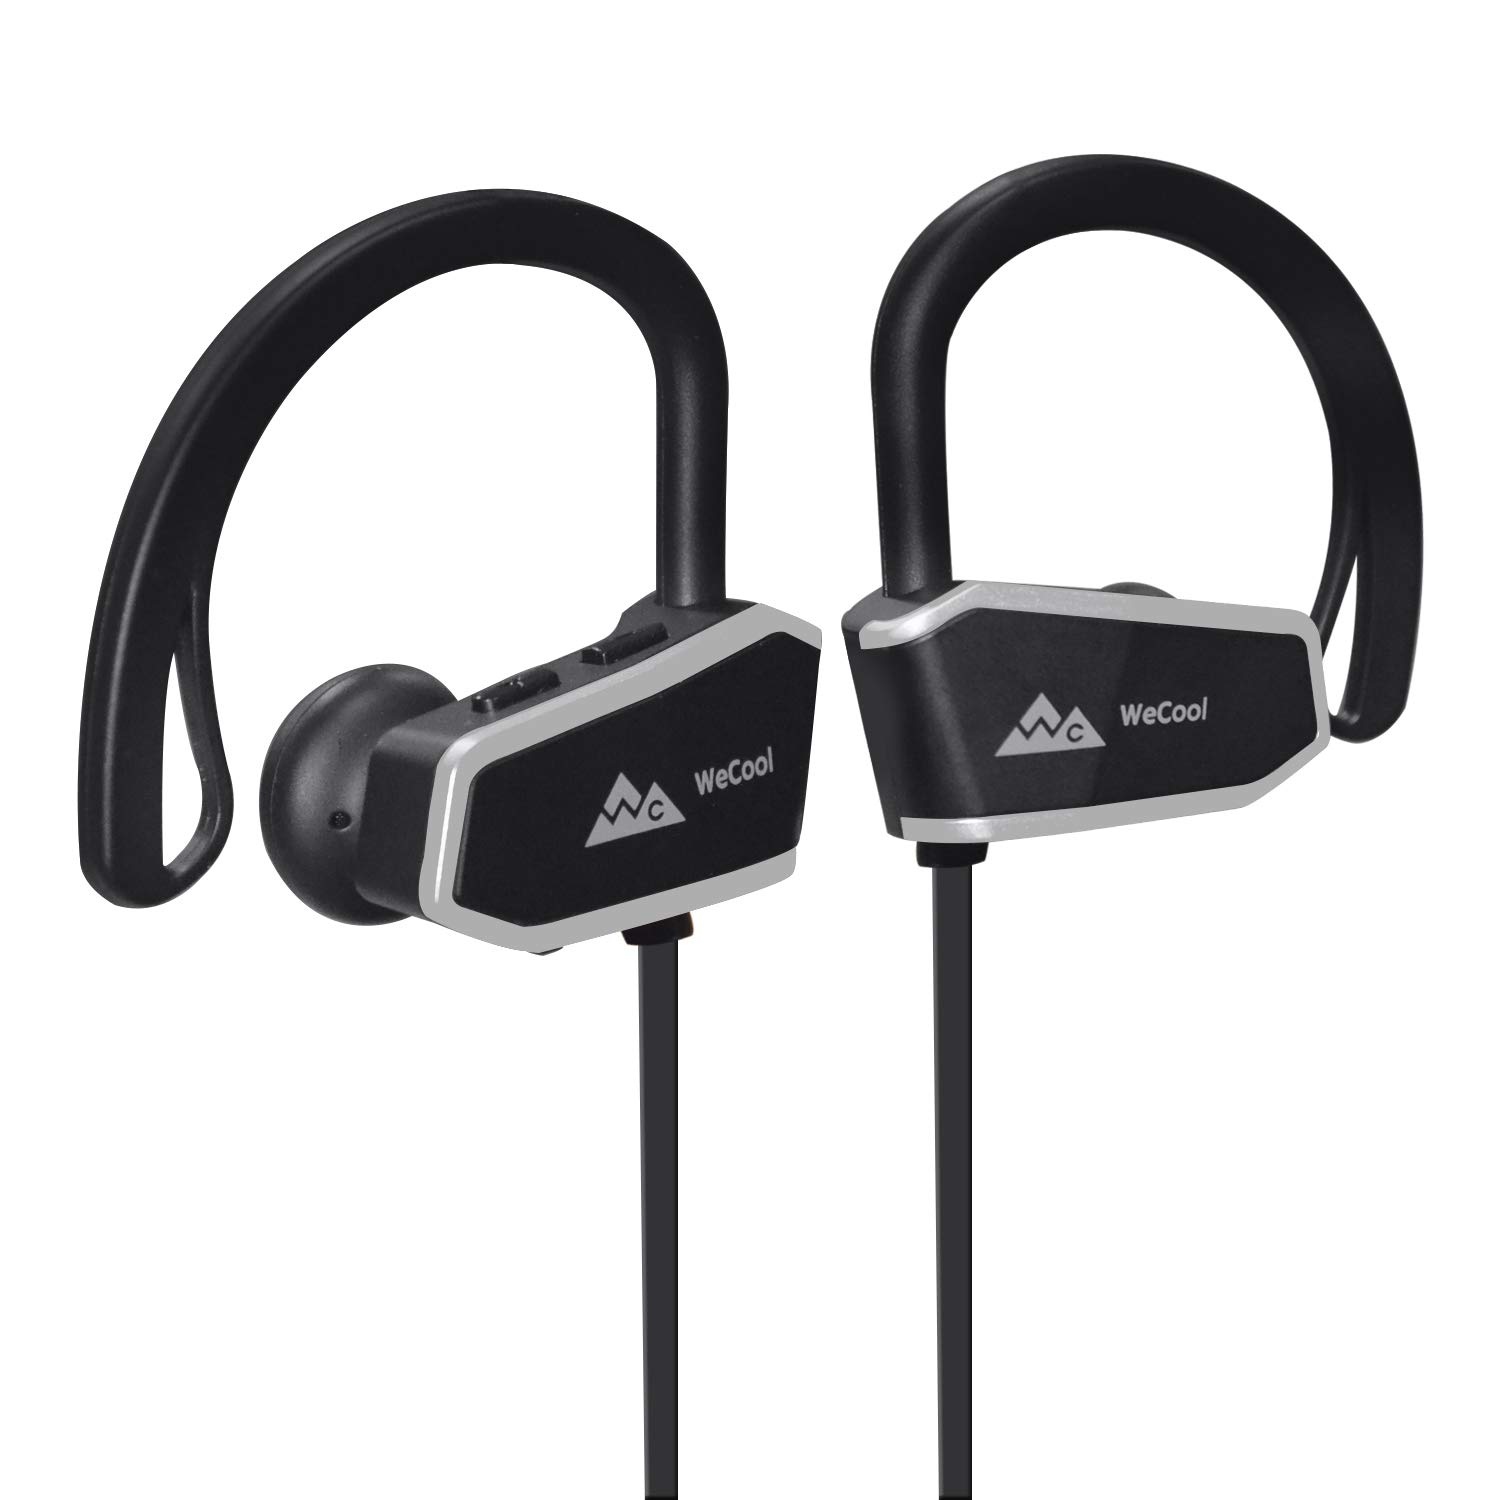 f830ec70a63 WeCool Joggerz WCZ10 Bluetooth Headset Wireless || Sports Headsets ||  Bluetooth Earphone || Bluetooth Earphones for Mobile with mic for Music and  Hands-Free ...